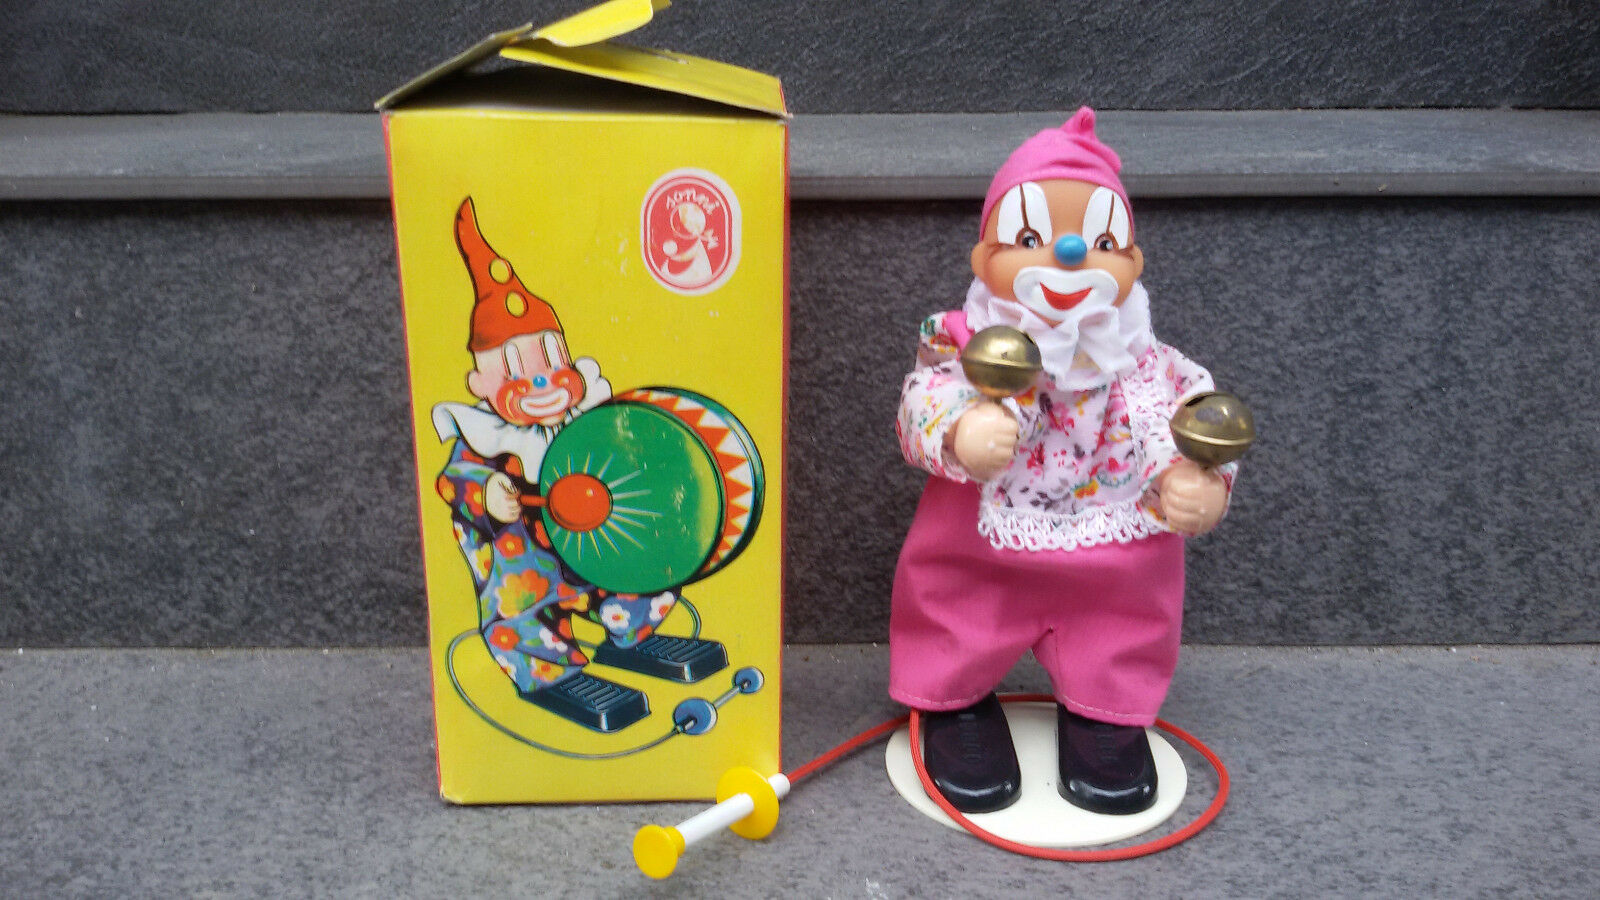 RARE VINTAGE GDR GERMAN SONNI MECHANICAL TOY CIRCUS CLOWN PLAYING CYMBALS + BOX